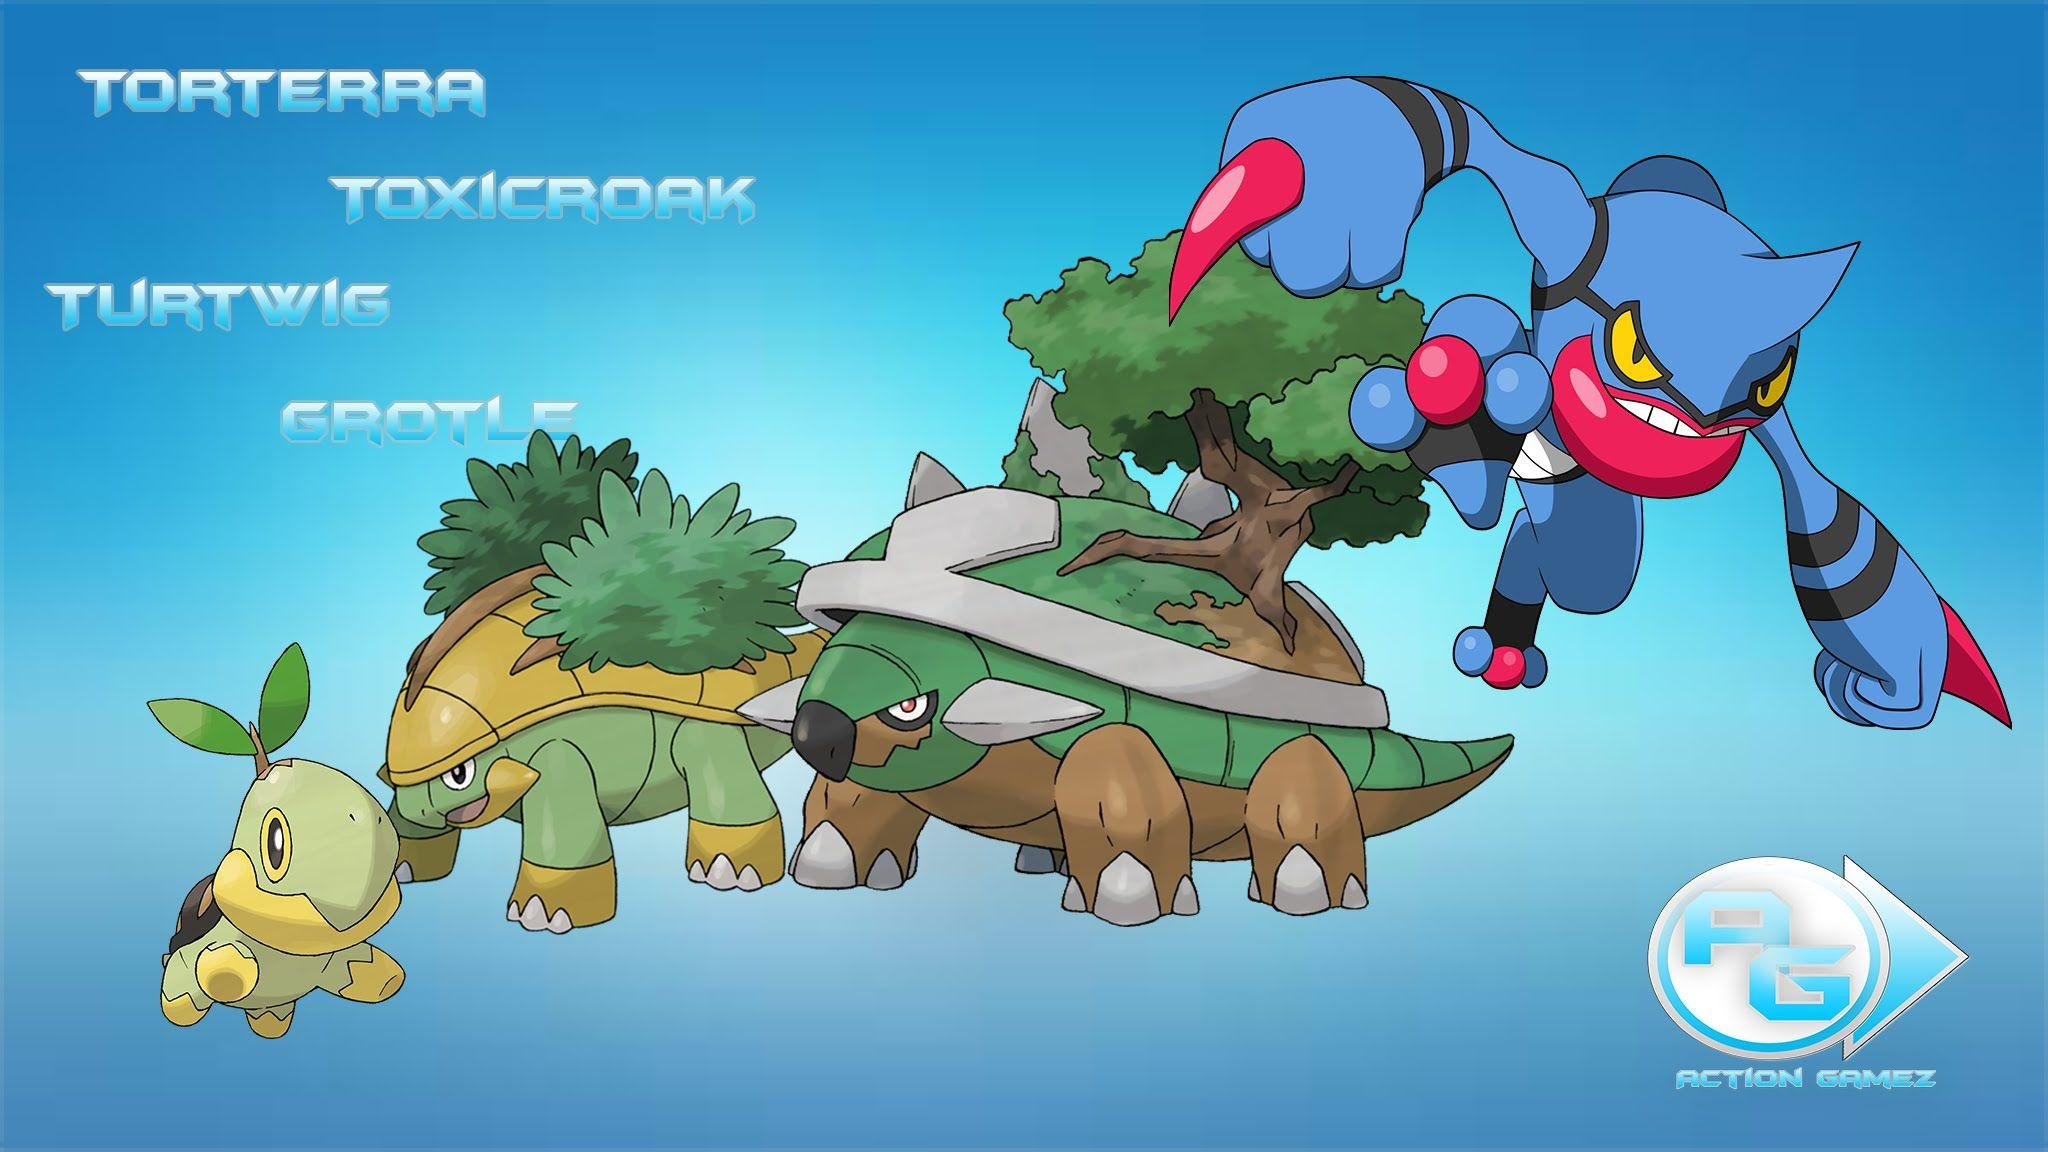 Respawn do Torterra, Toxicroak, Grotle e do Turtwig